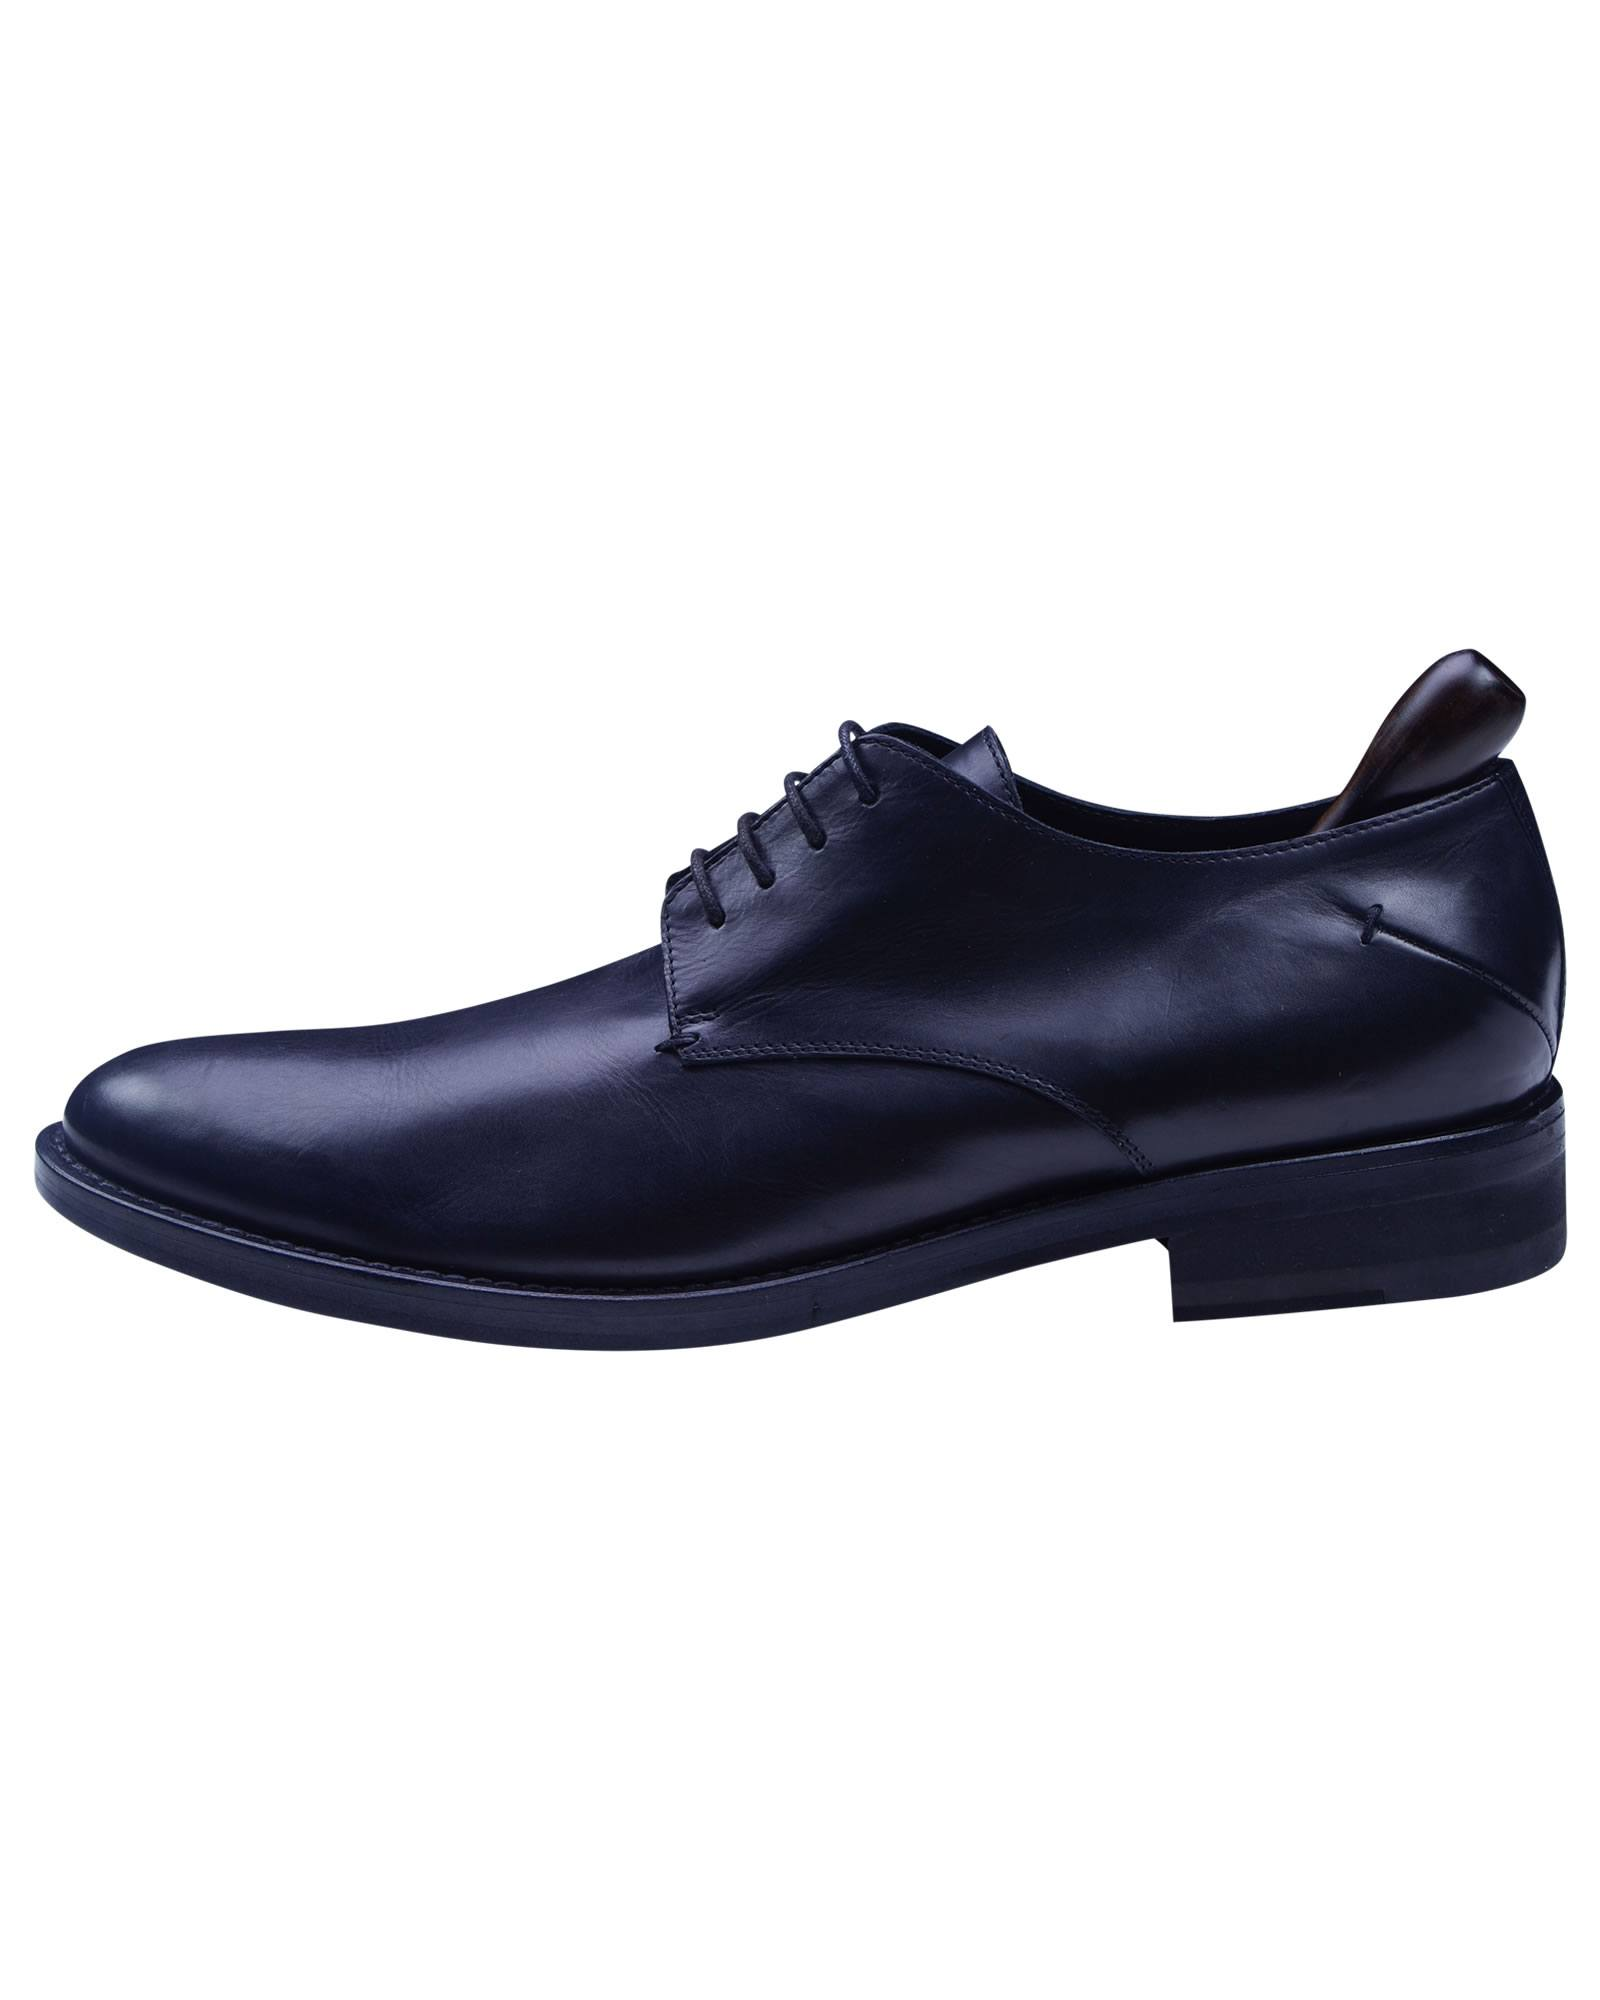 Costume National Black Color Calf Leather Handmade Lace Up Shoe -1